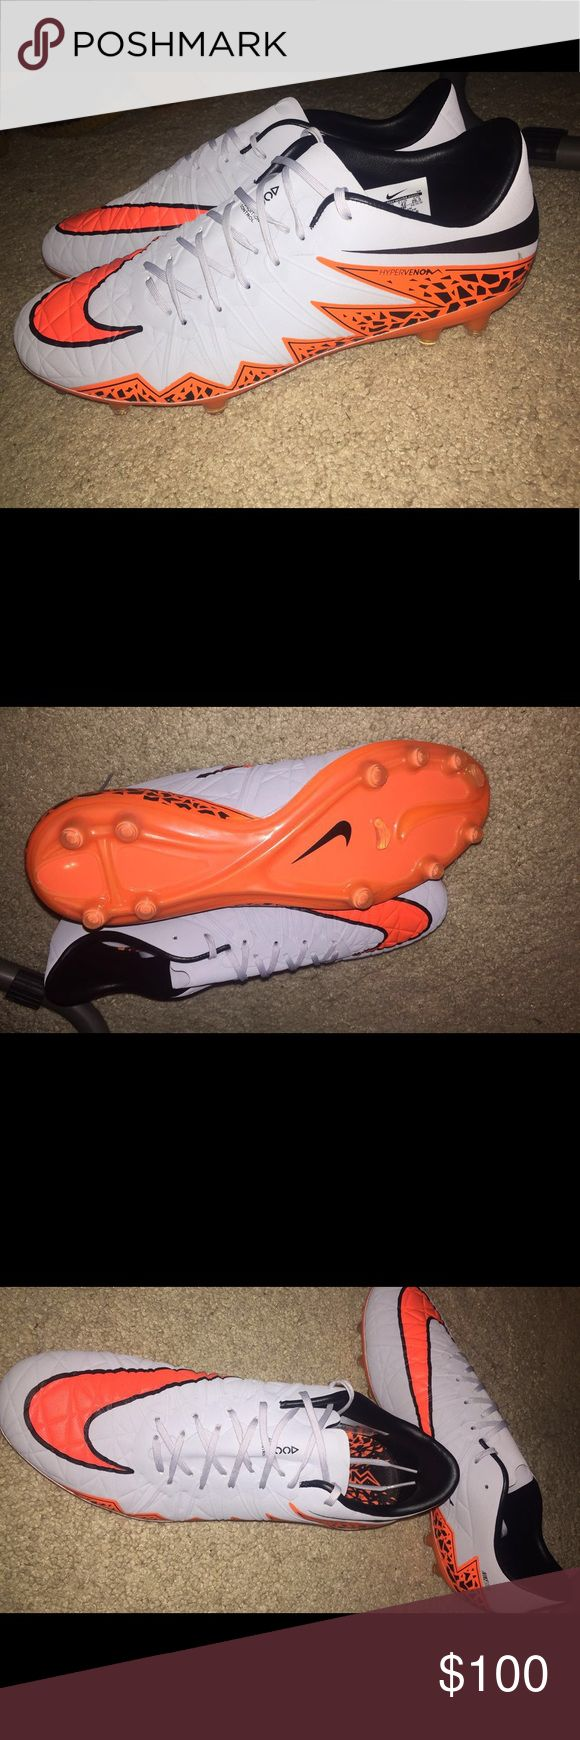 Nike hypervenom 2 phinish 100% authentic. Brand new with no box. Feel free to use the offer button. Nike Shoes